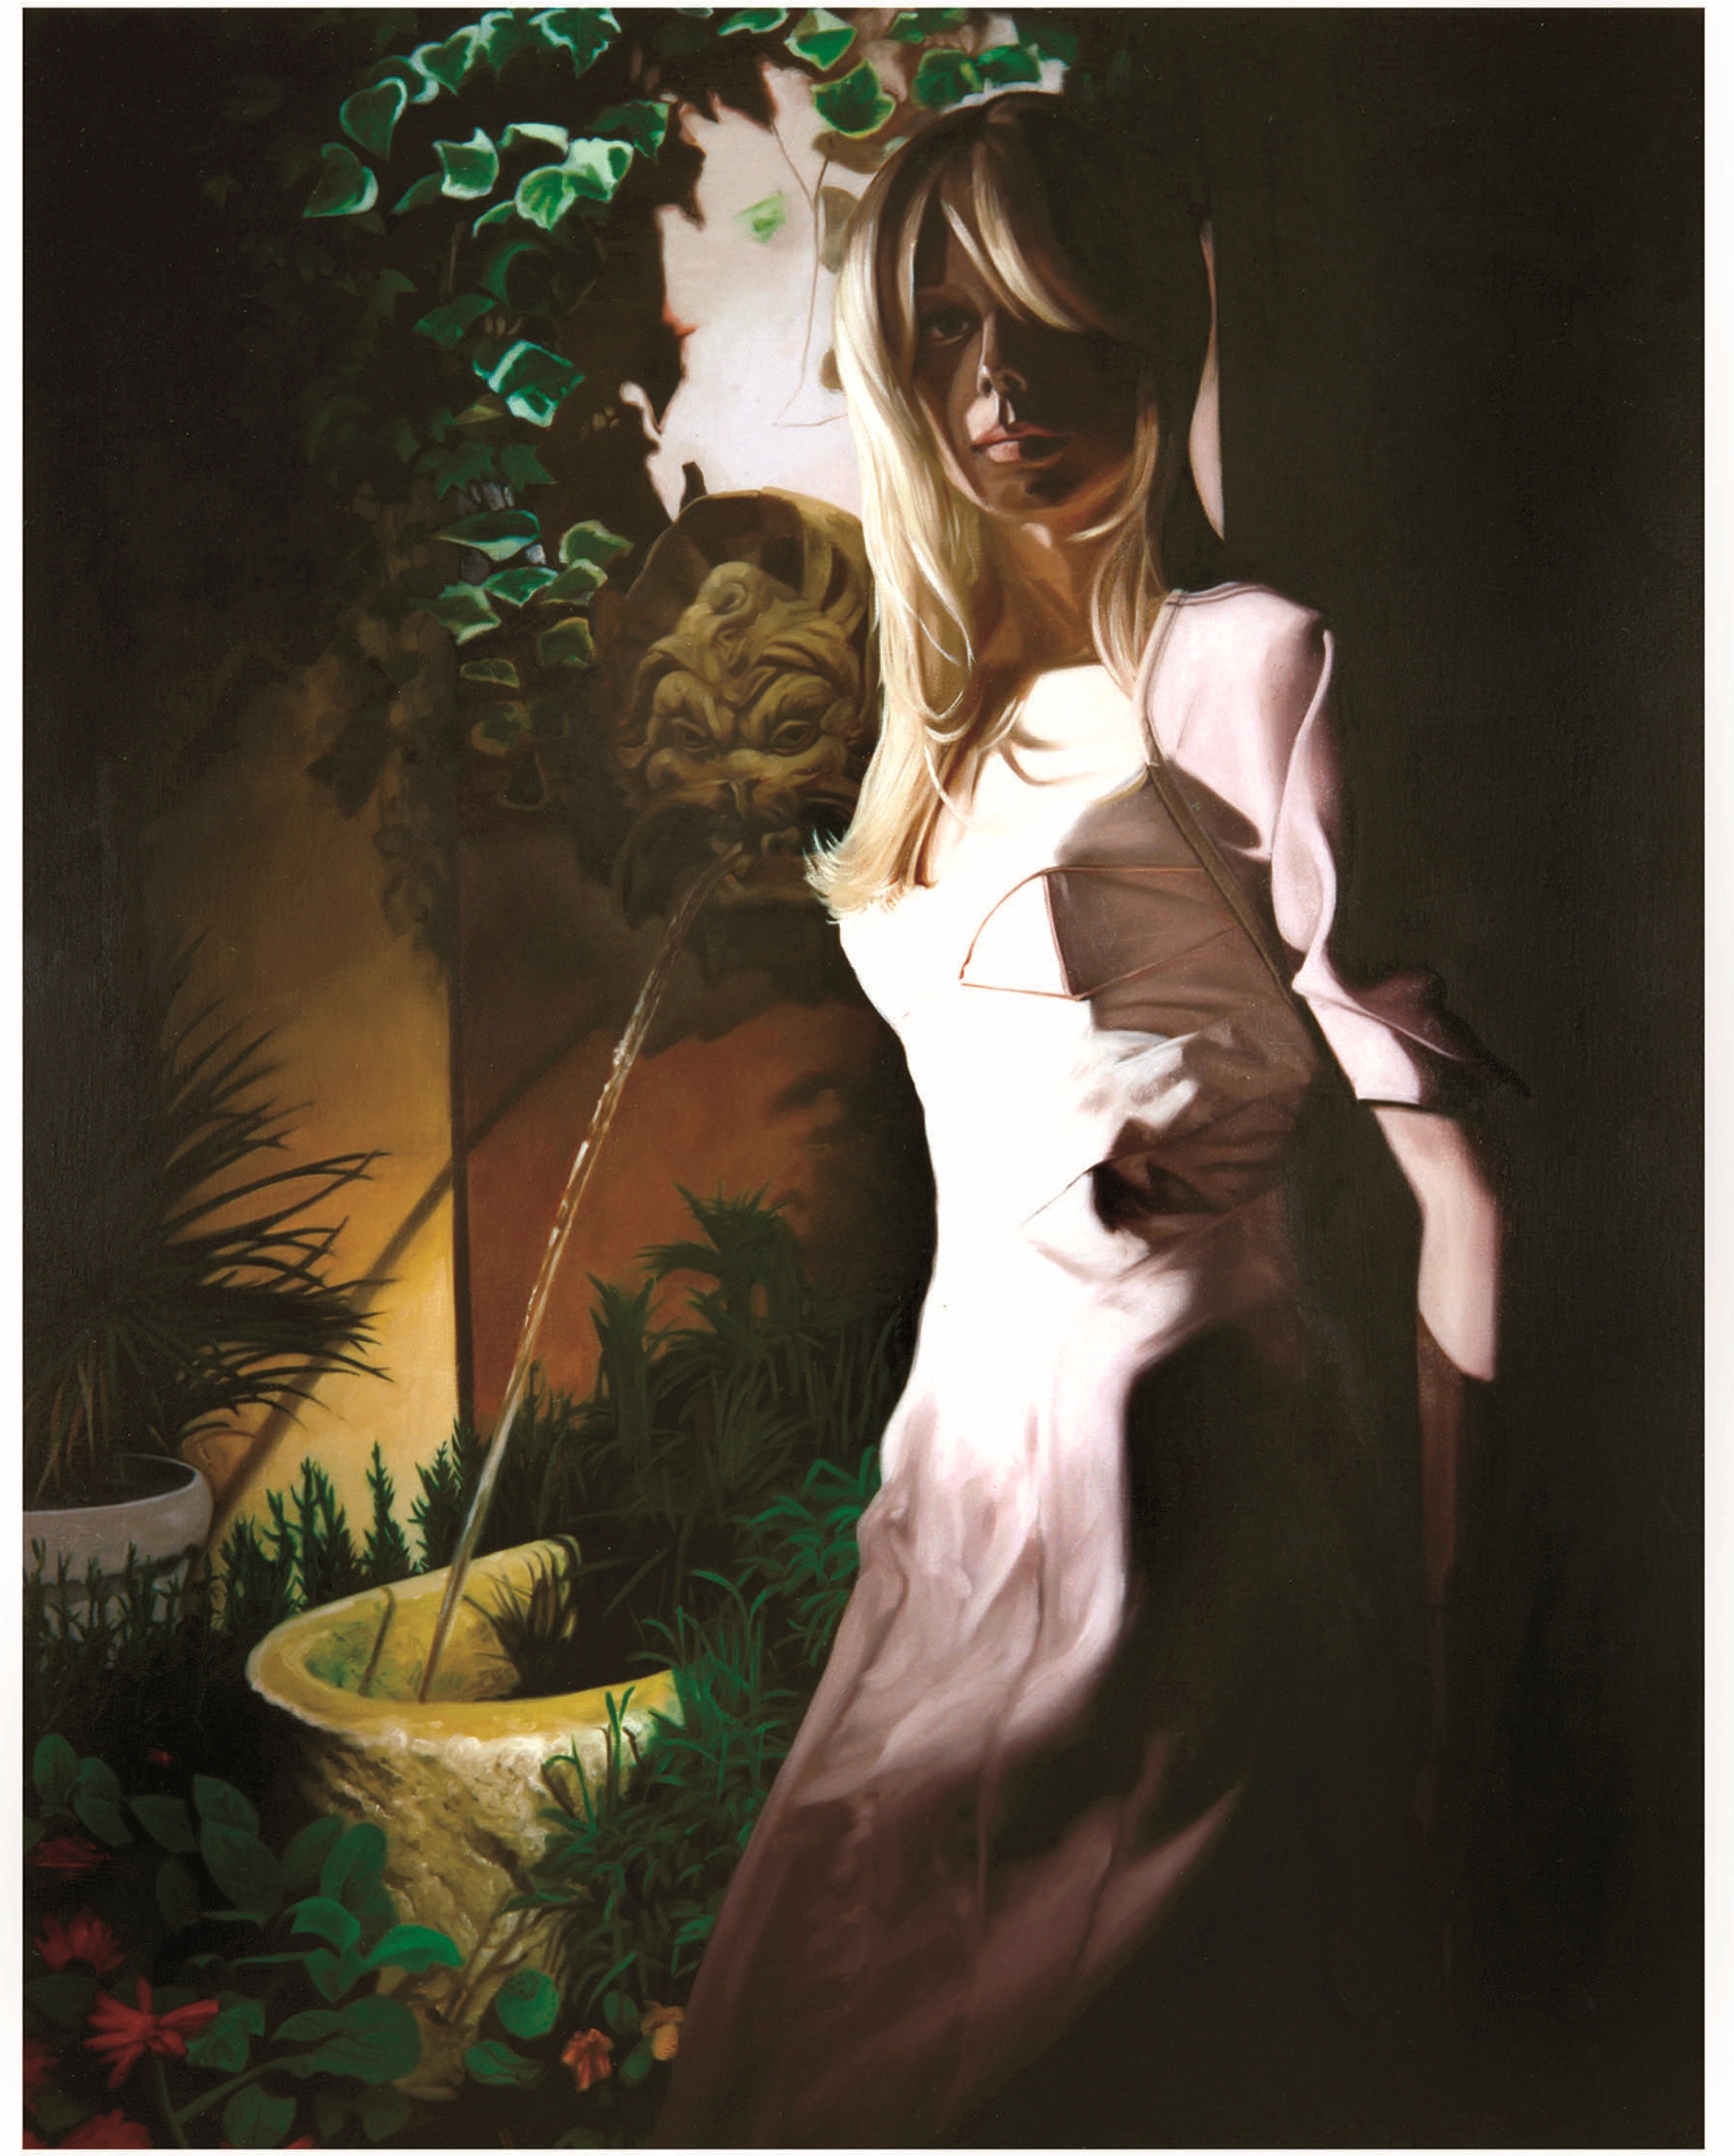 """Eve in """"The Garden""""  Oil on Canvas - 45 x 35in - 2004"""